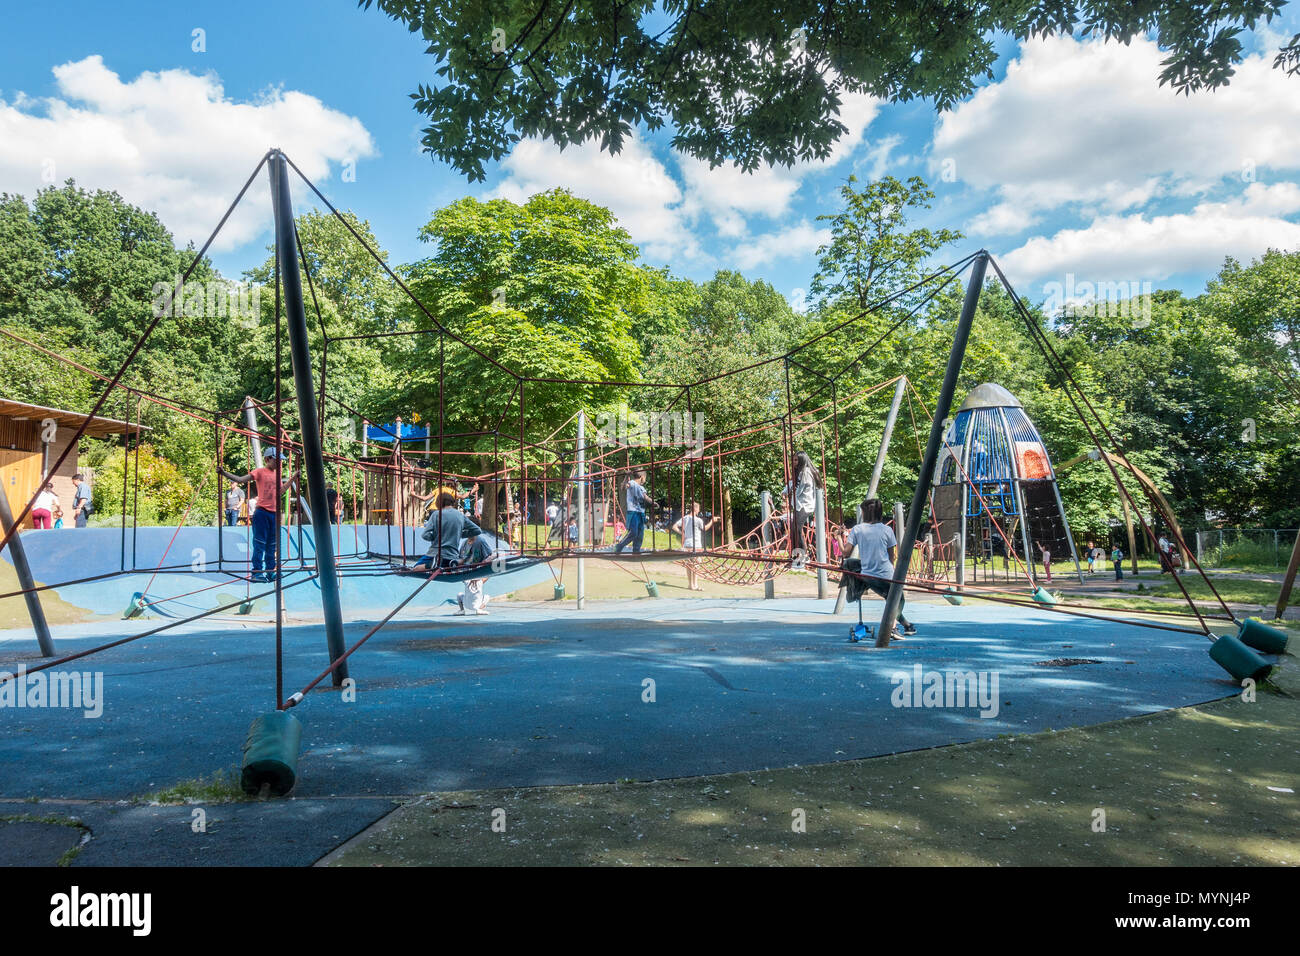 children-playing-in-an-adventure-playground-on-holland-park-in-london-uk-MYNJ4P.jpg